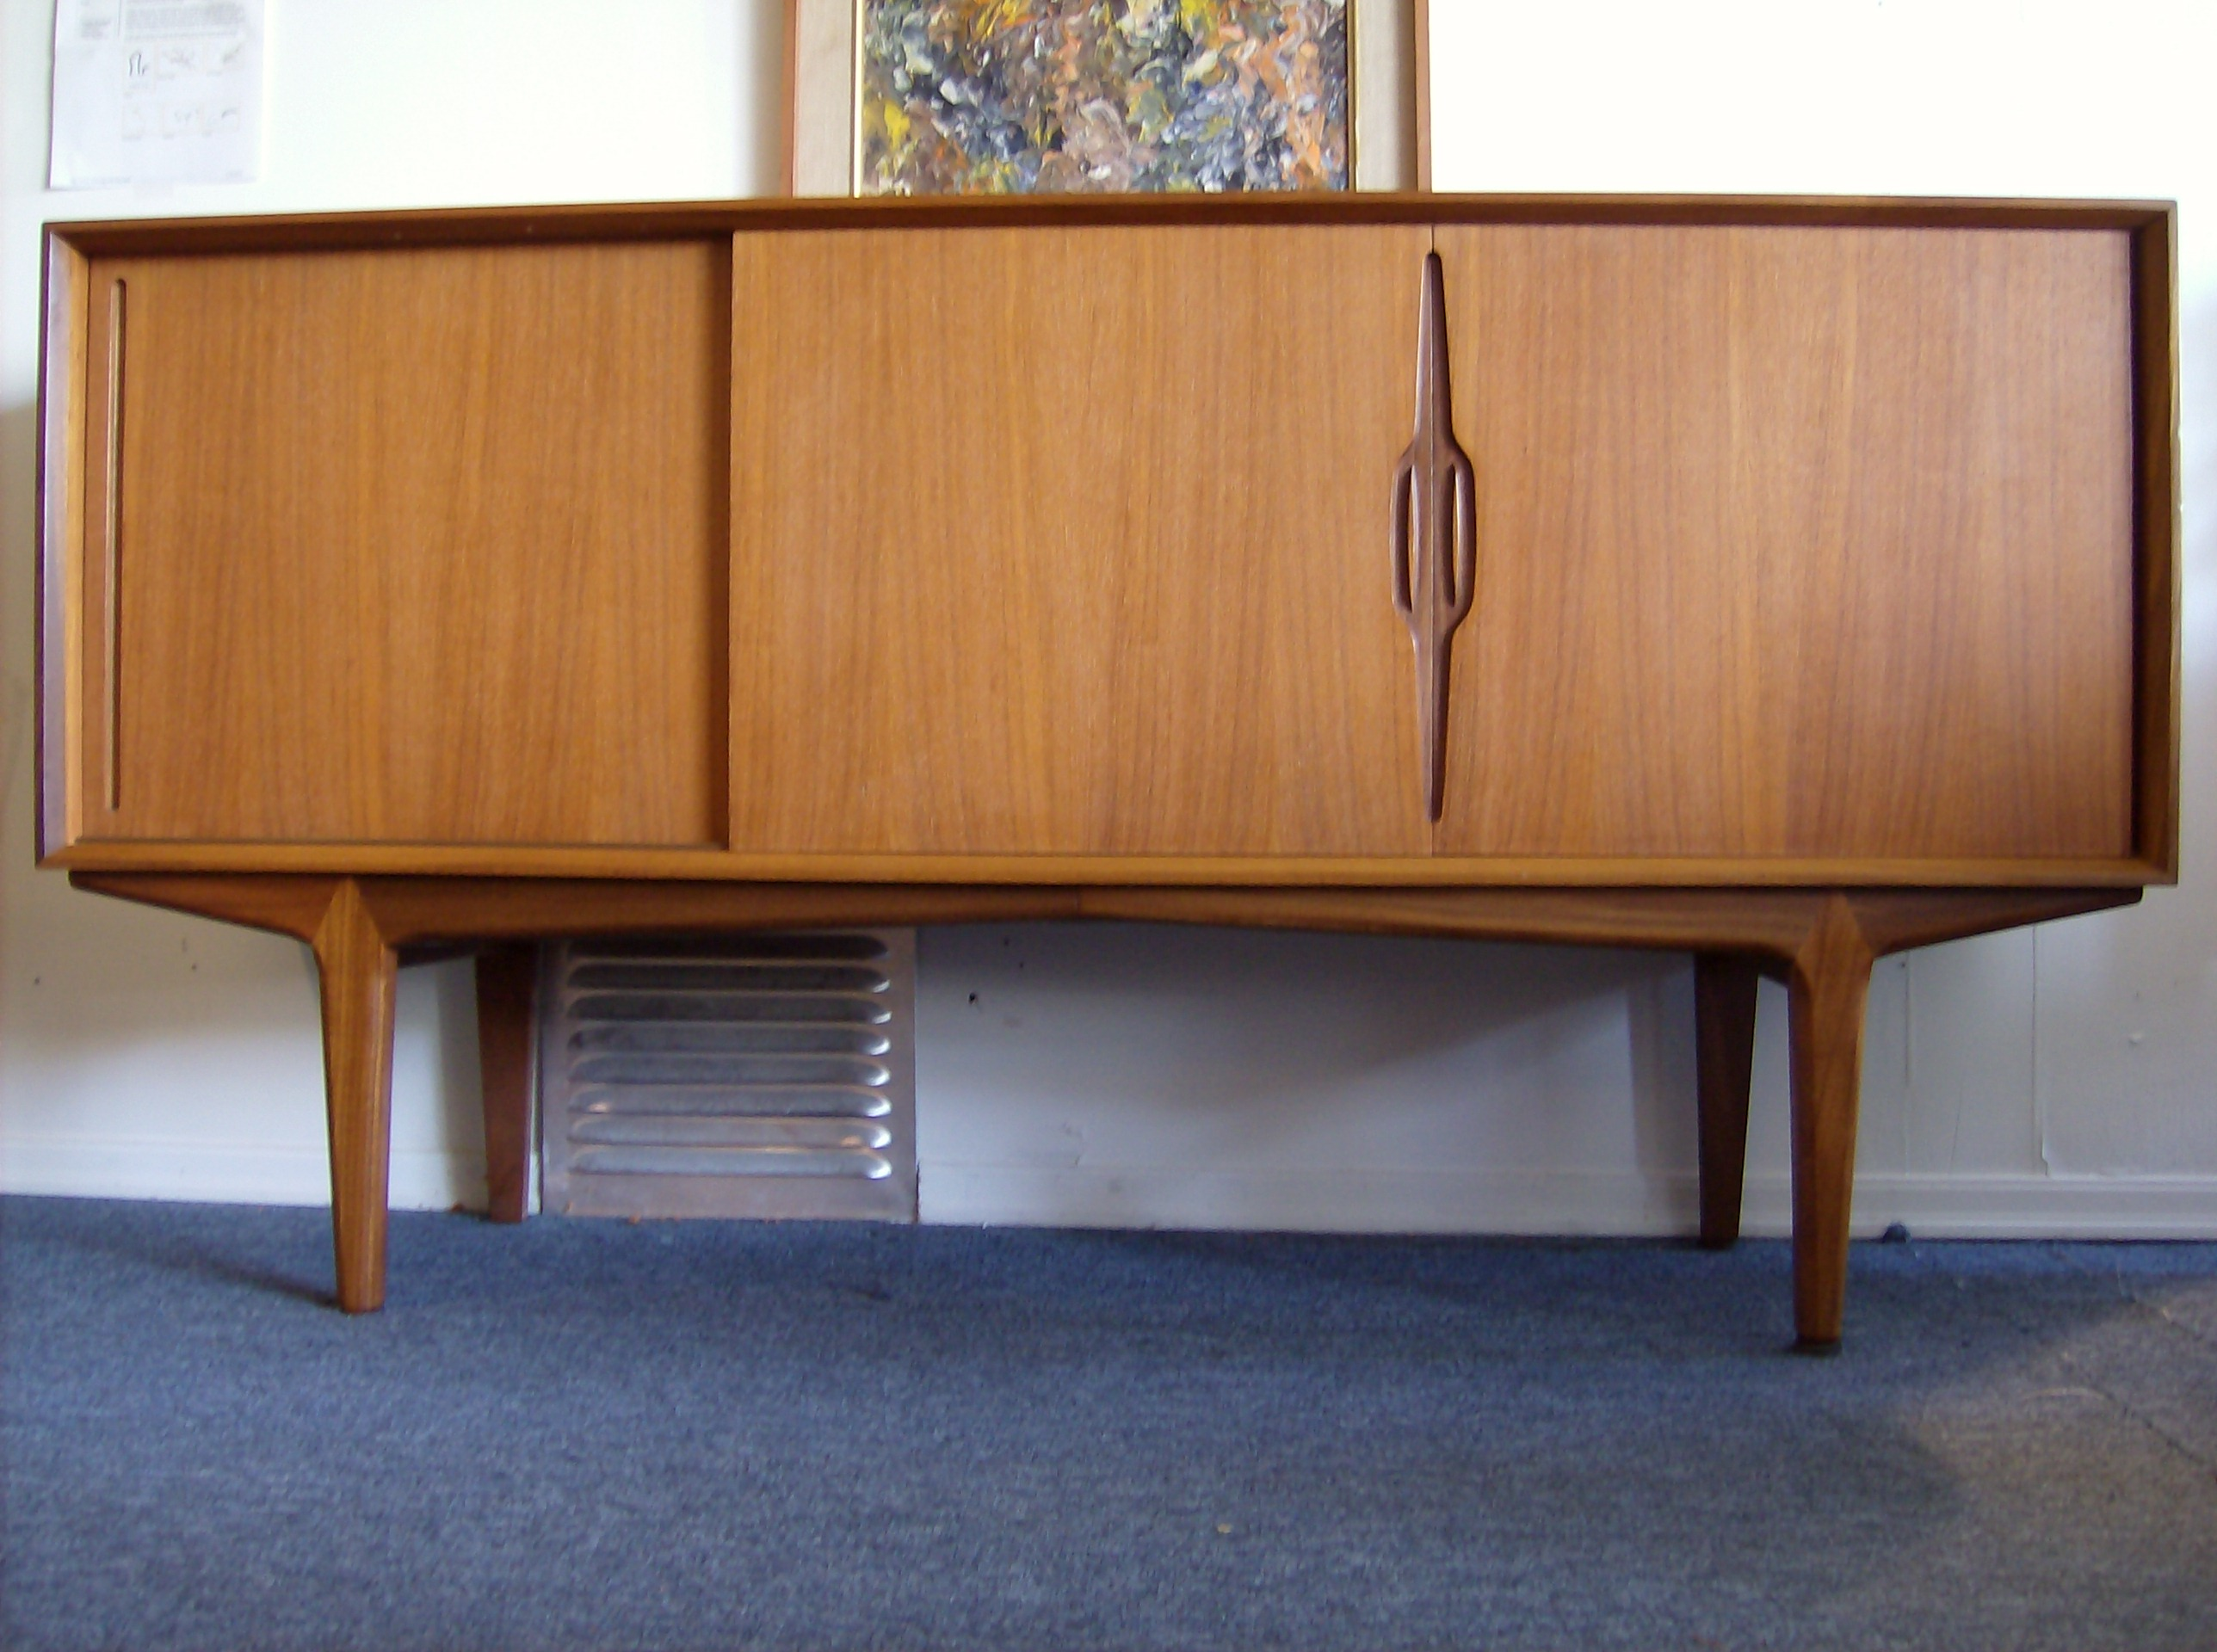 BUAT TESTING DOANG: Danish Modern Furniture